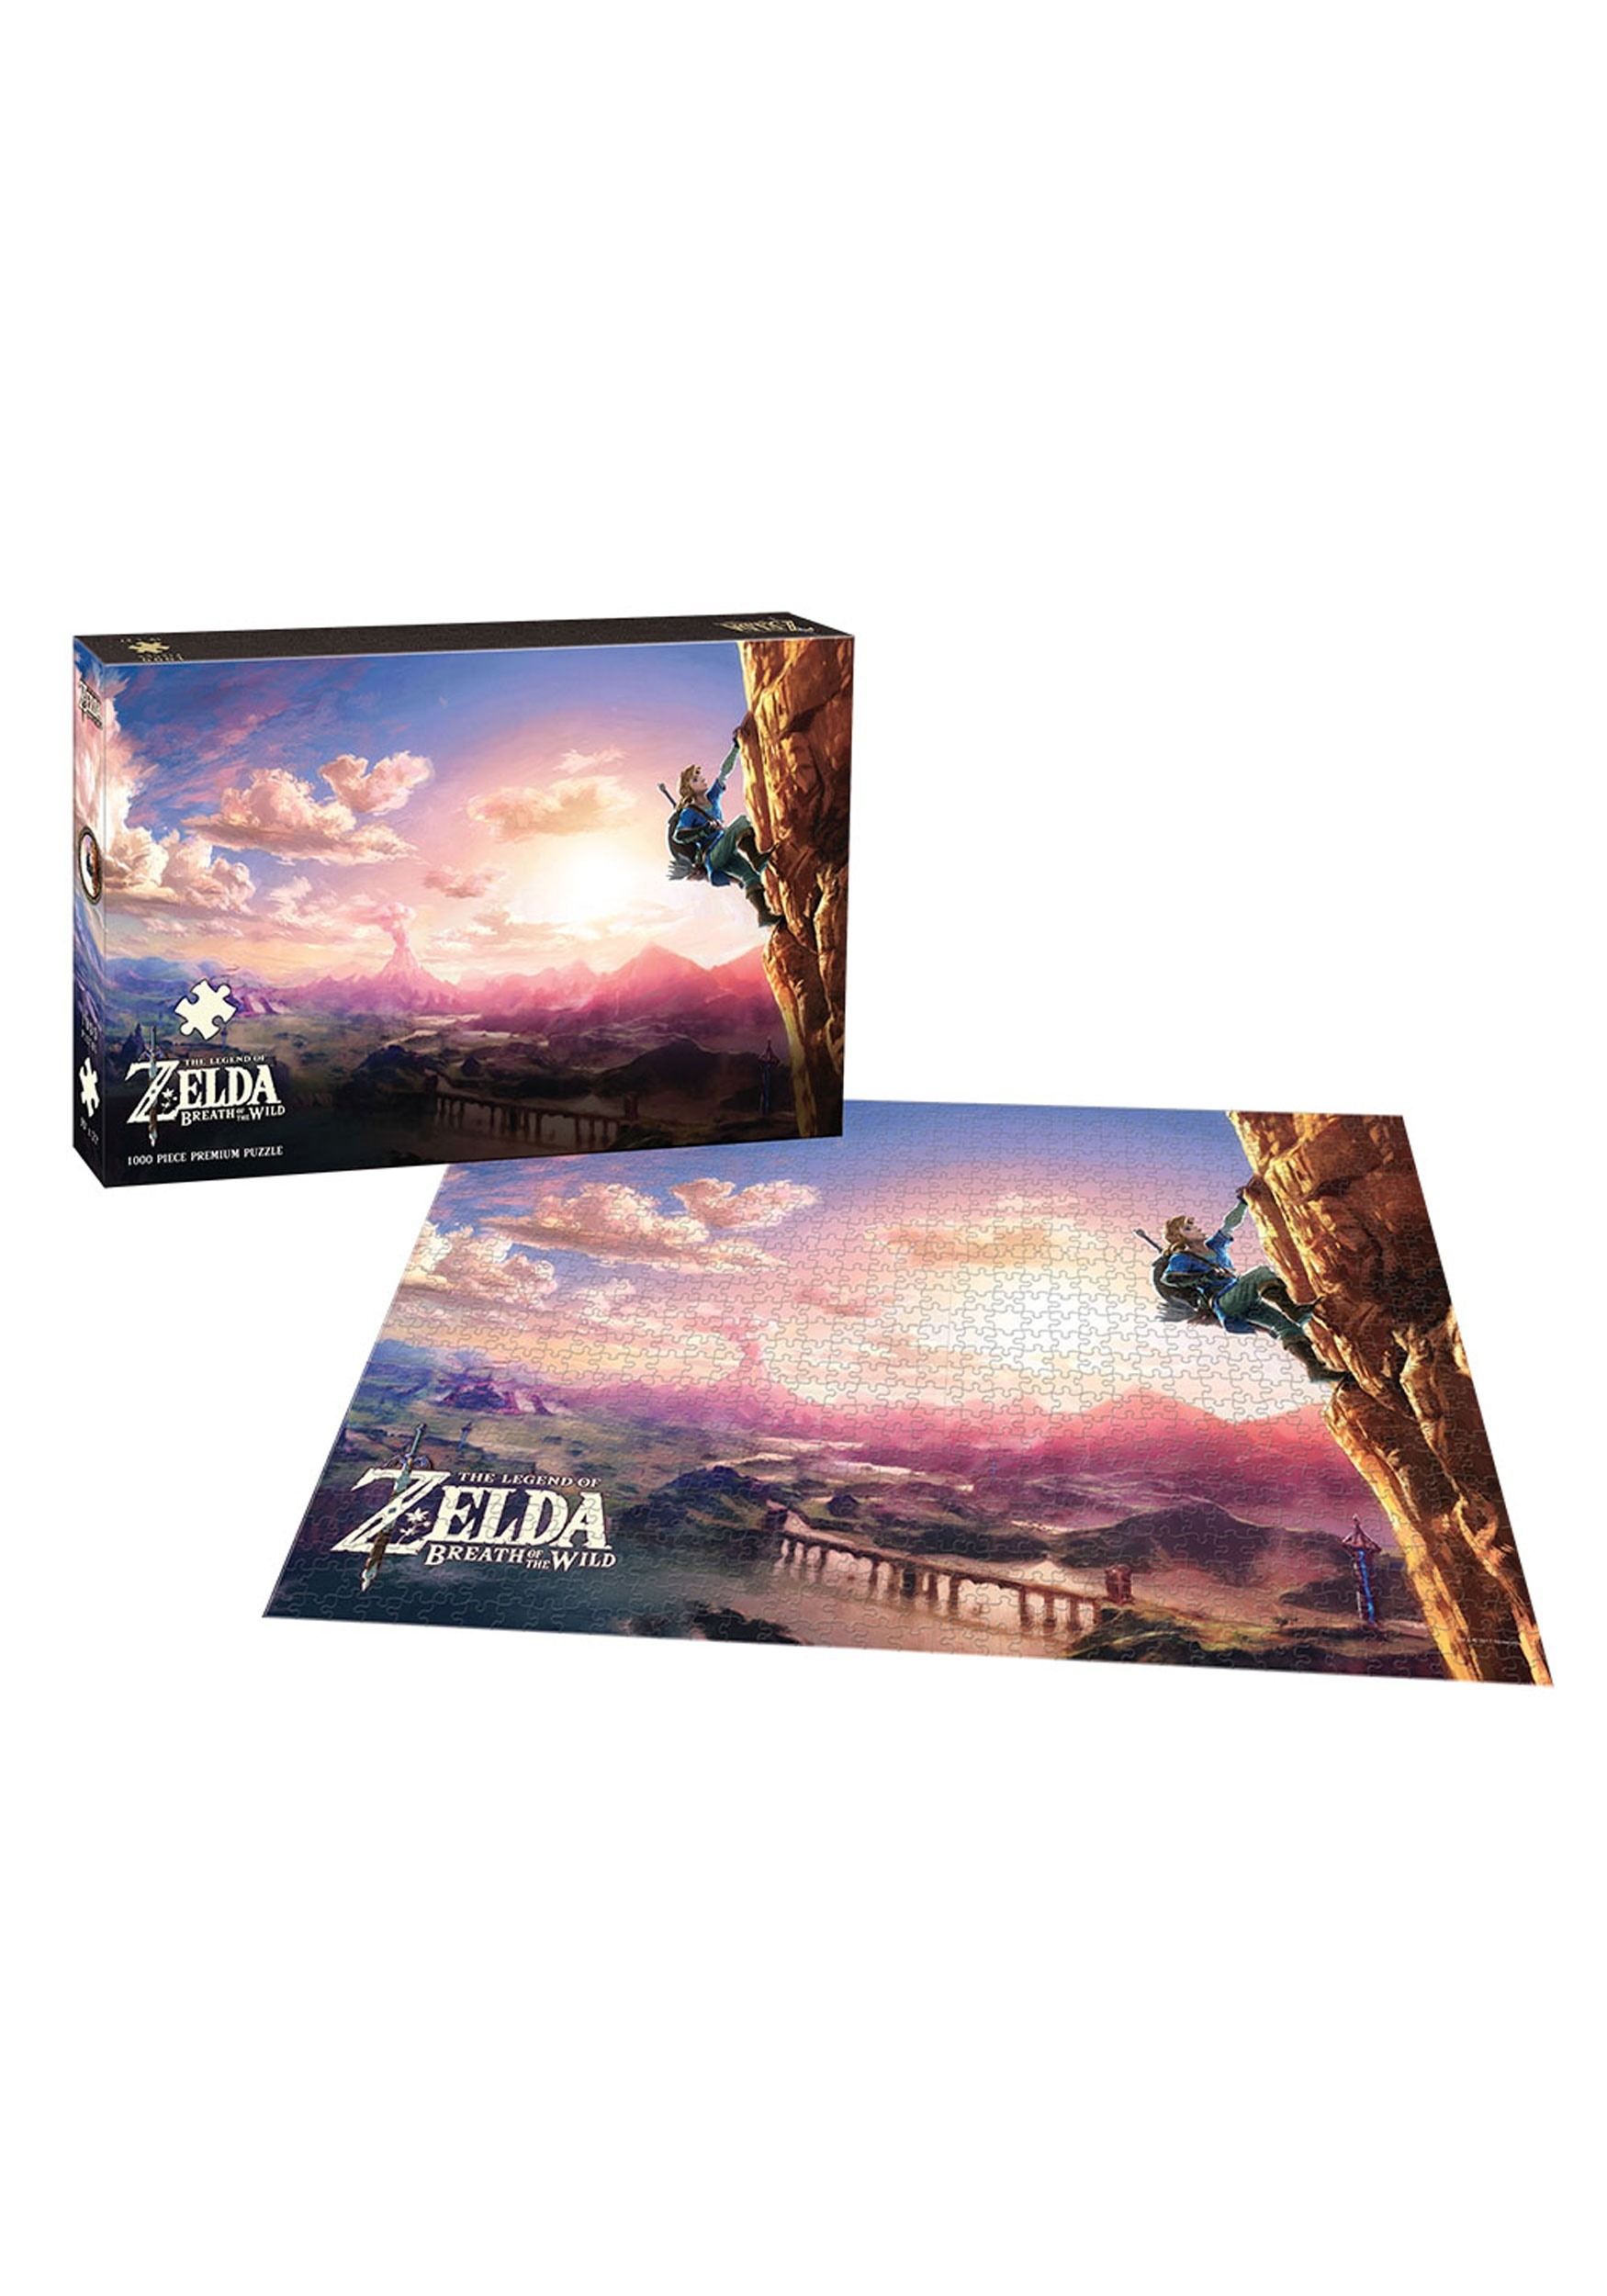 Legend of Zelda Breath of the Wild Scaling Hyrule Puzzle